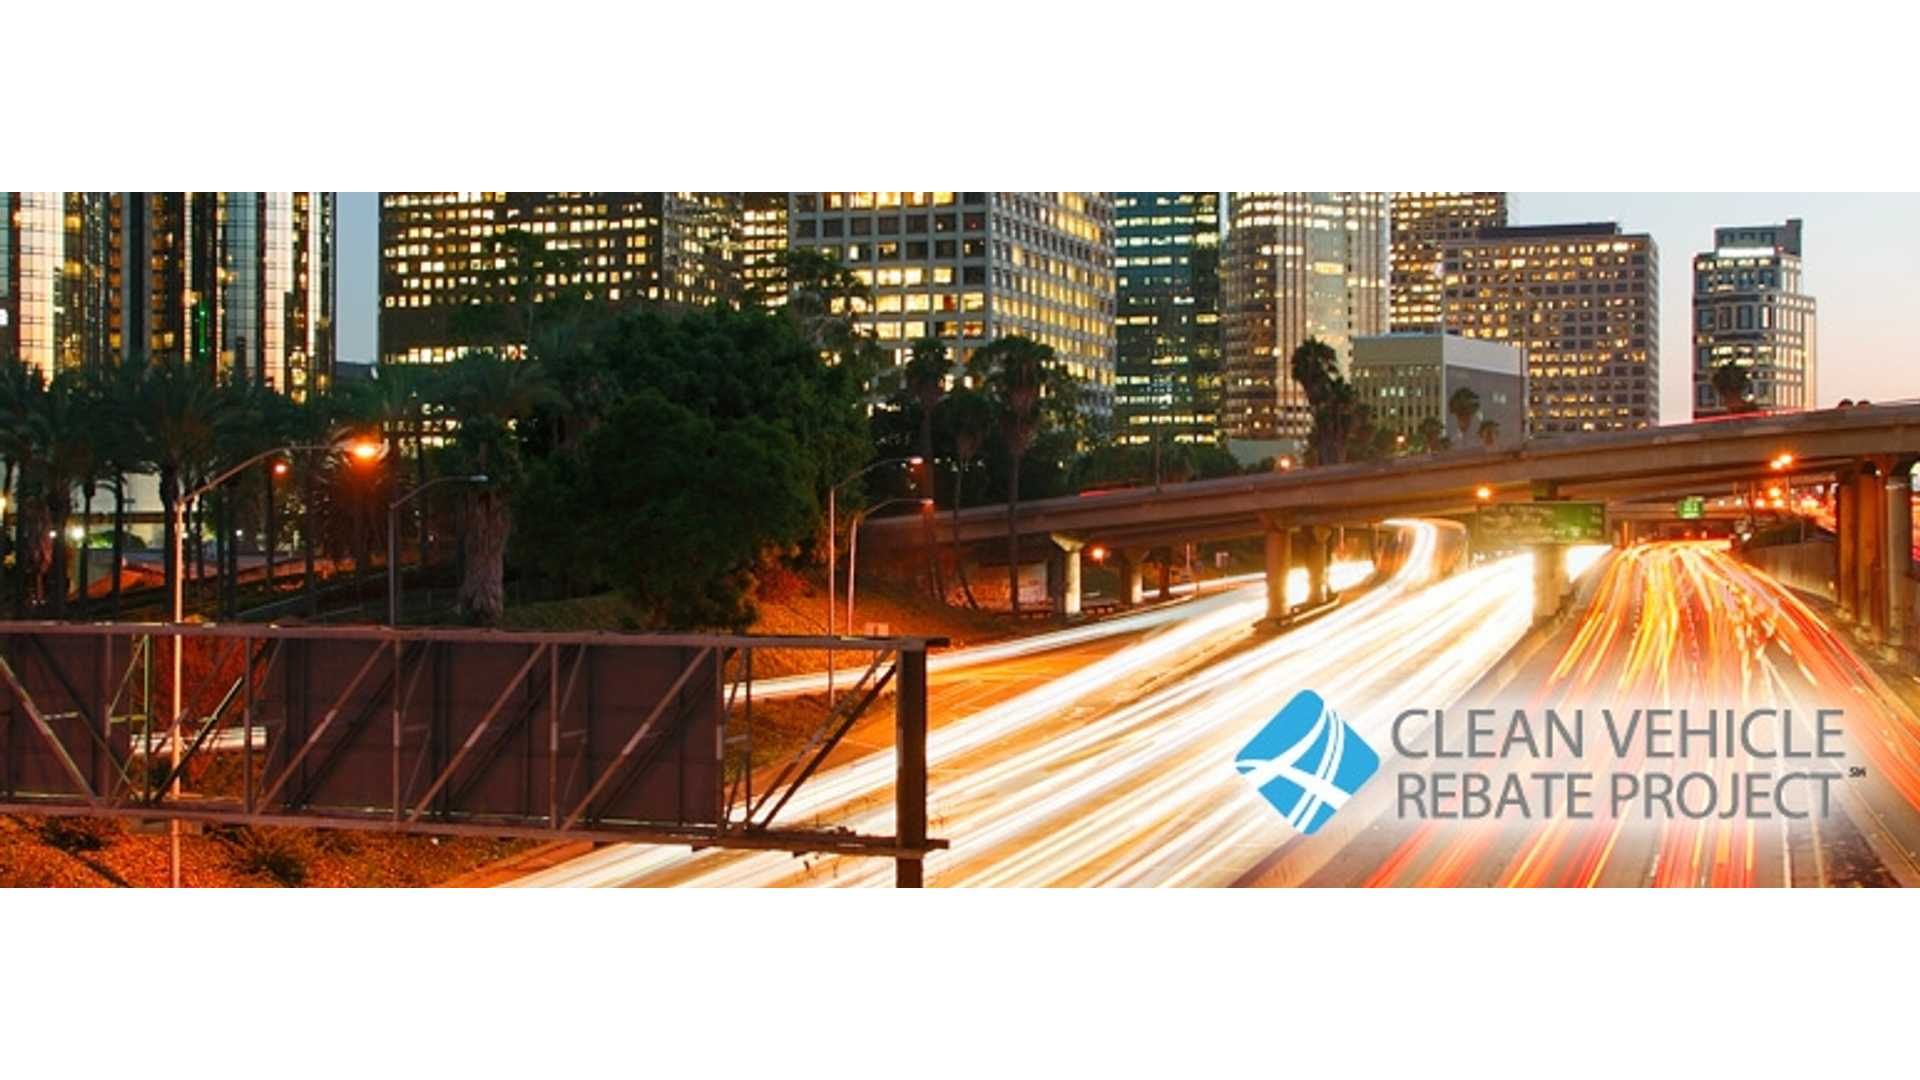 California S Clean Vehicle Rebate Project Announces New Incentives For Low And Moderate Income Drivers